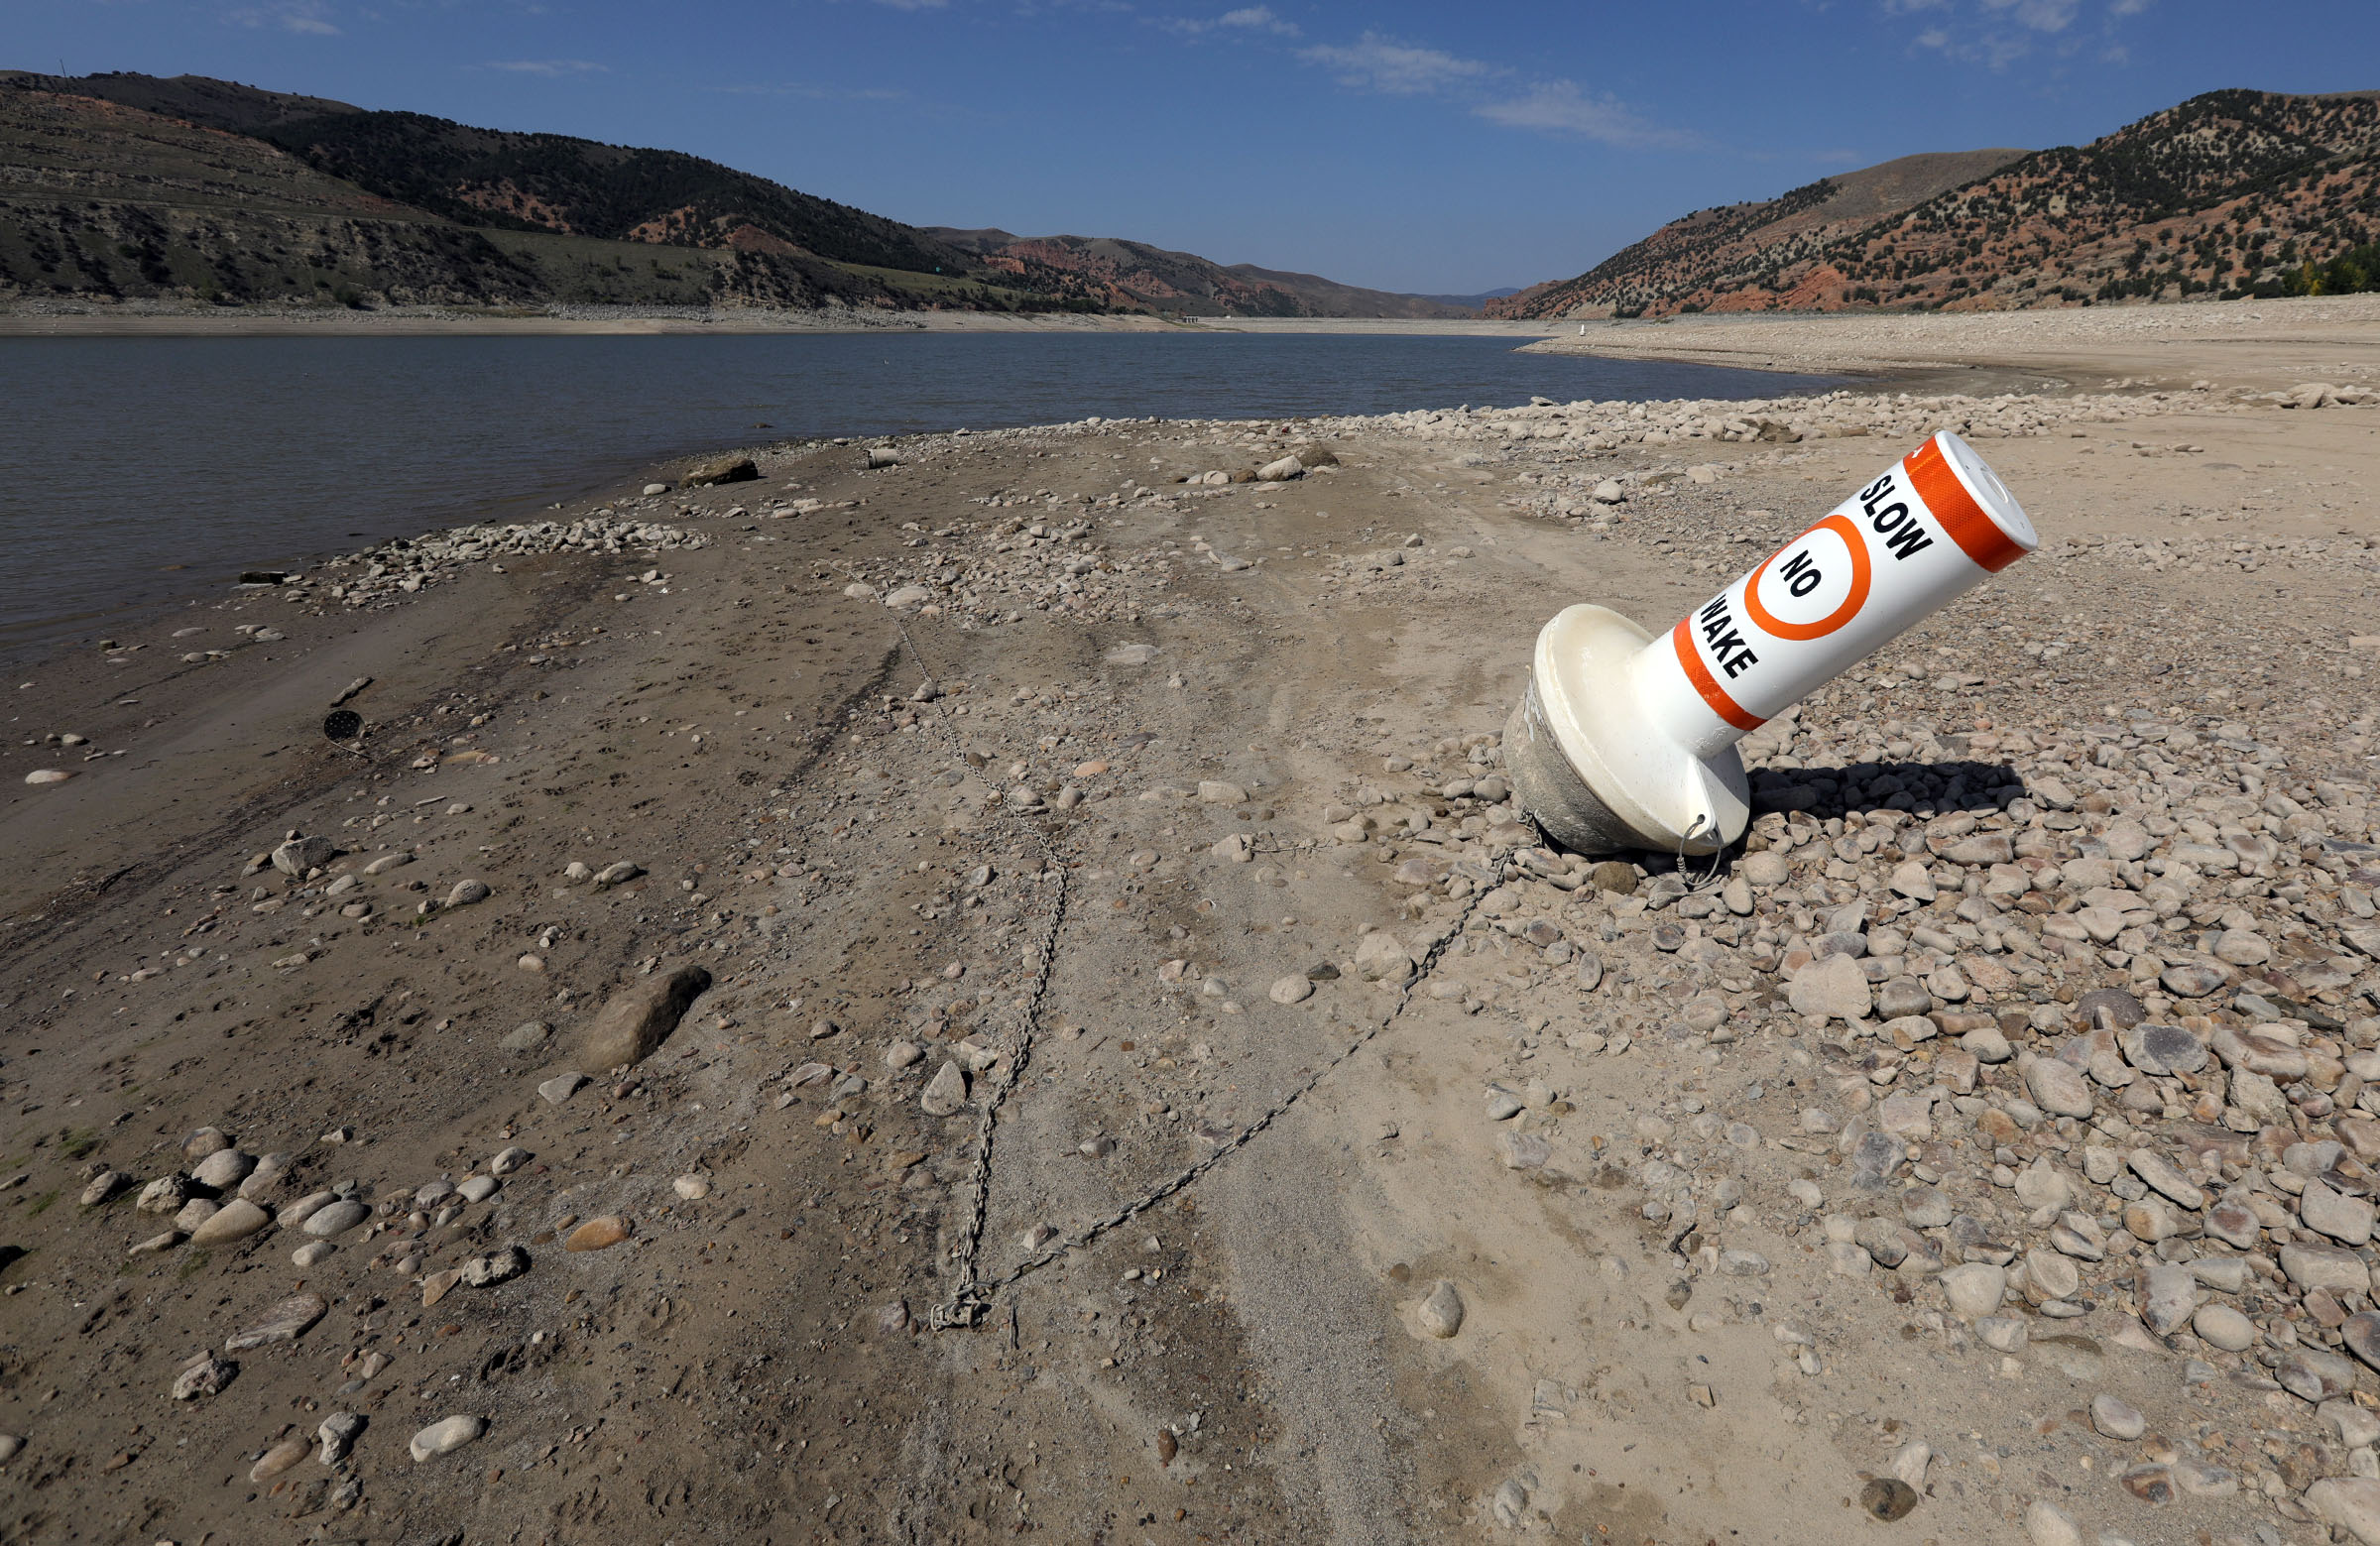 A grounded buoy at Echo State Park in Utah.